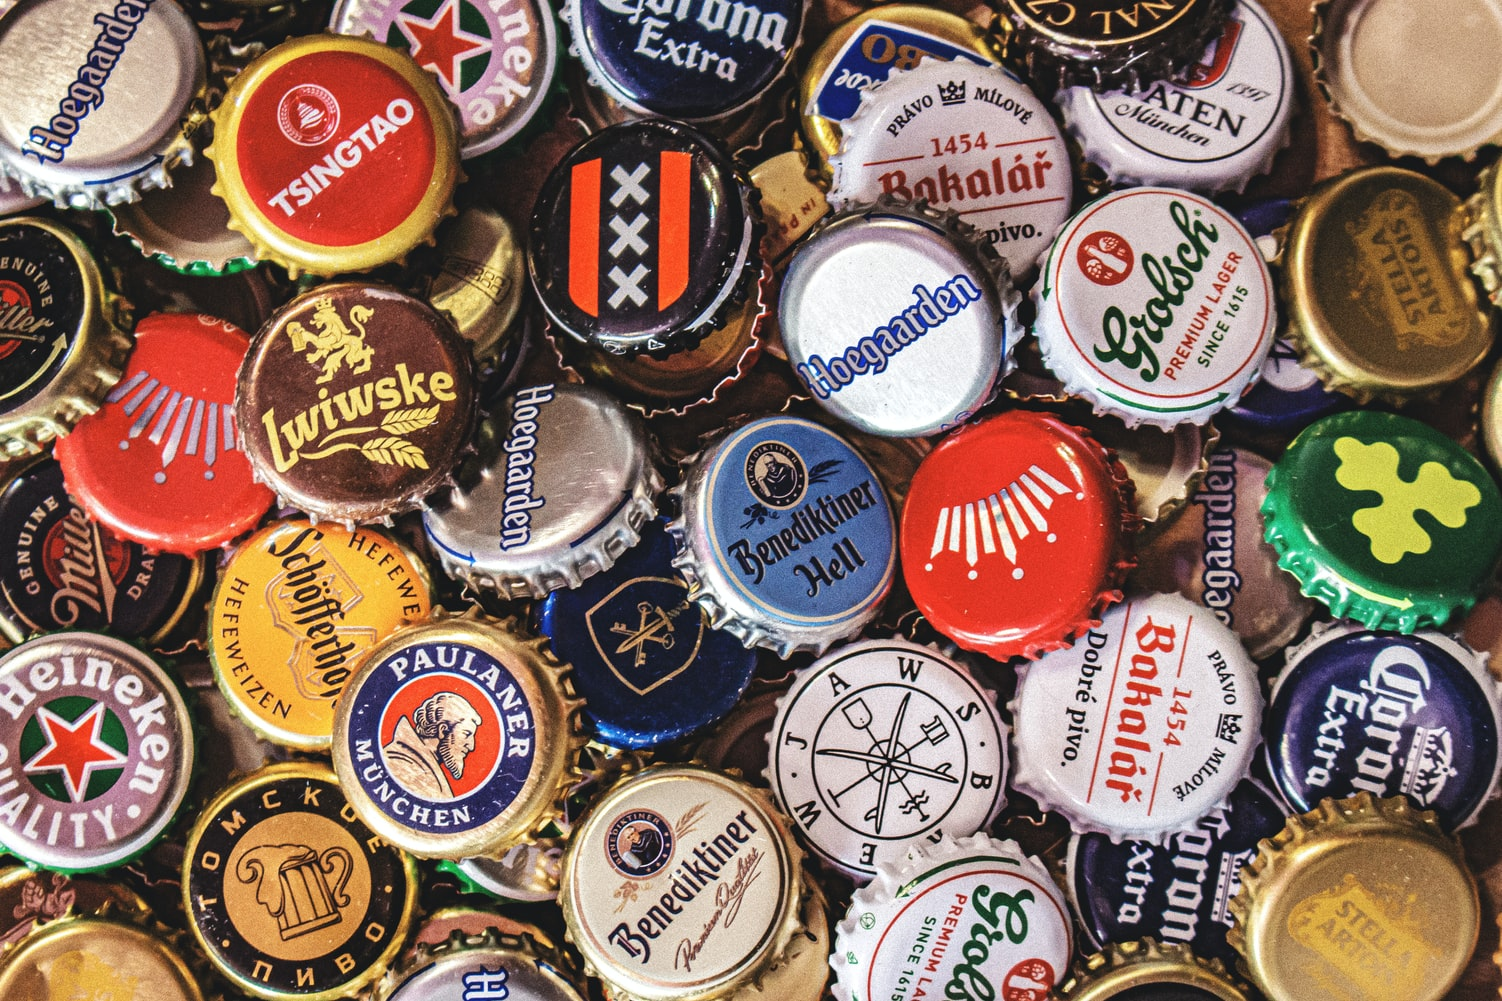 beer can logos and slogans